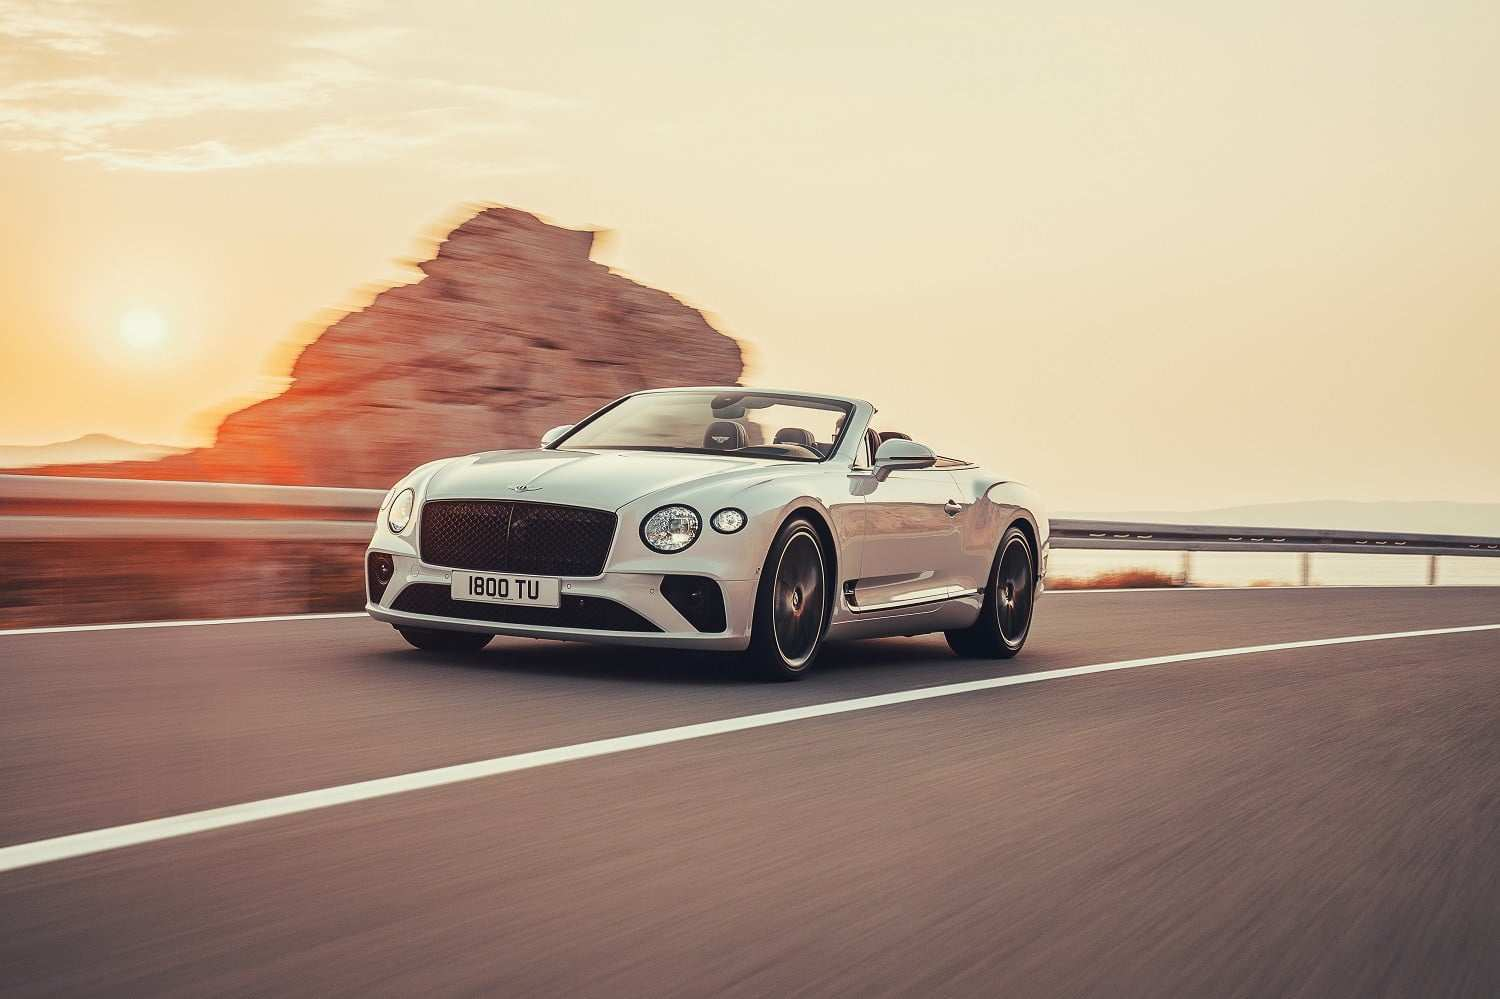 18 Concept of 2020 Bentley Gtc Price for 2020 Bentley Gtc